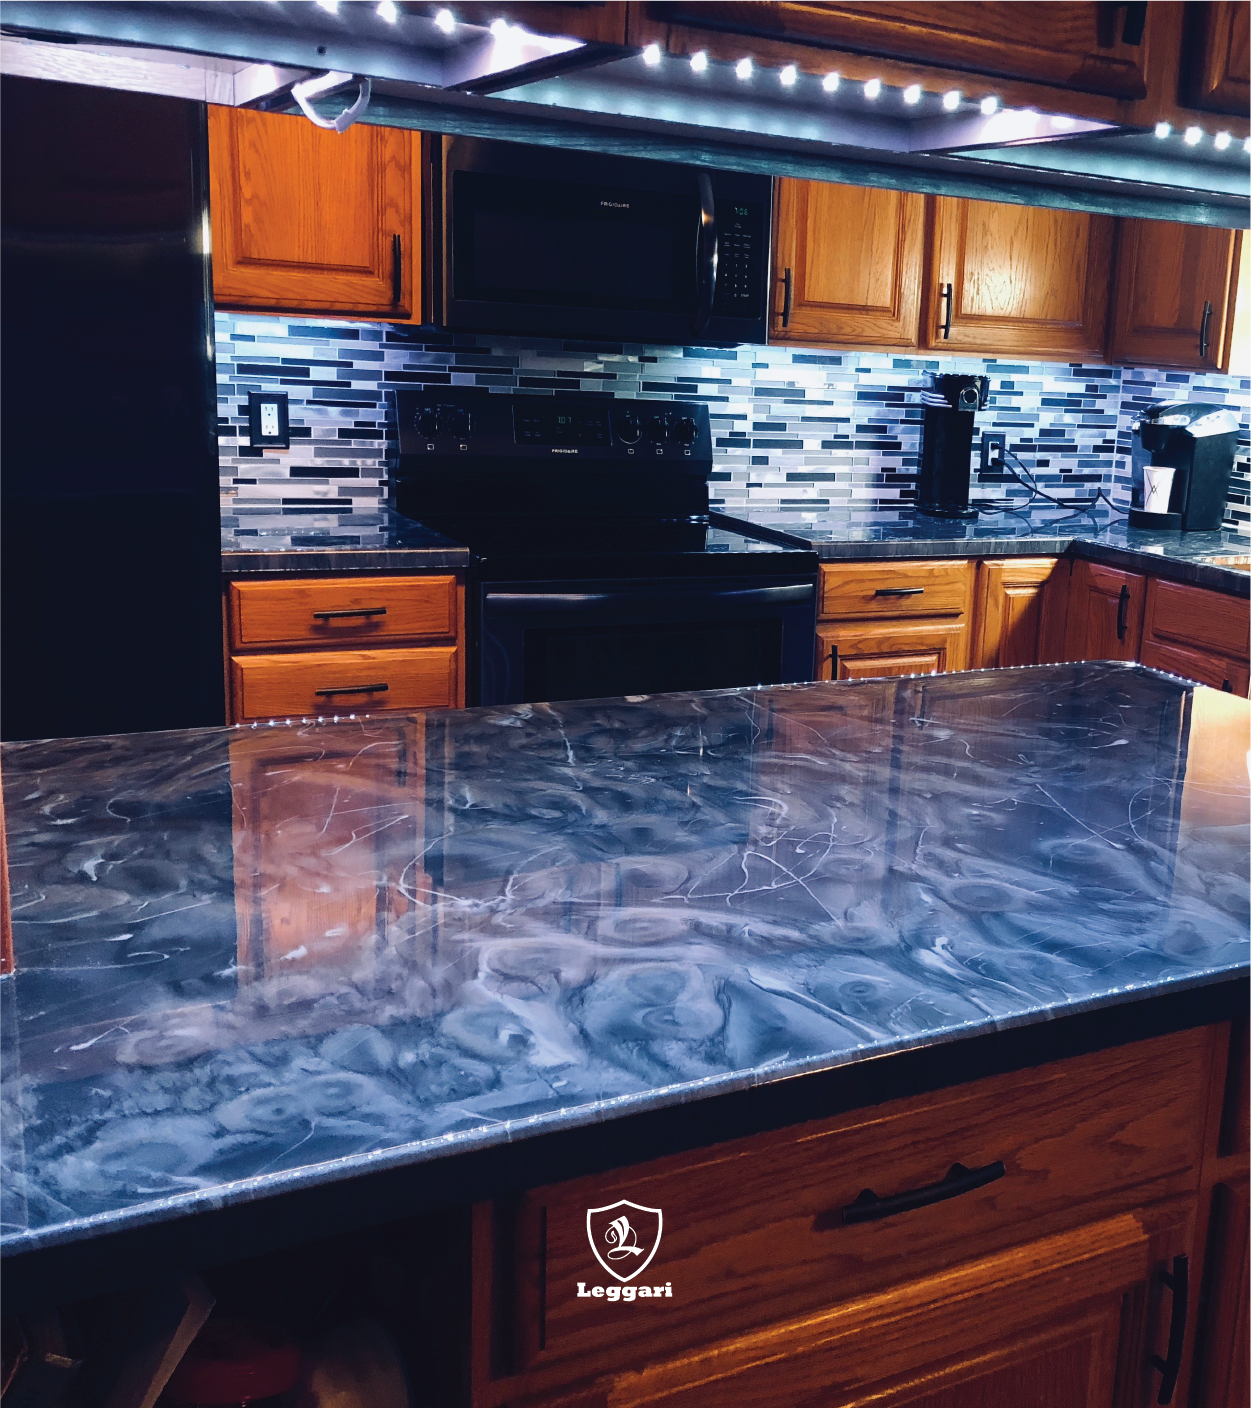 Check Out Our Website To See All The Different Options And Looks You Have With Leggariproducts You Can G Epoxy Countertop Kit Countertop Kit Epoxy Countertop